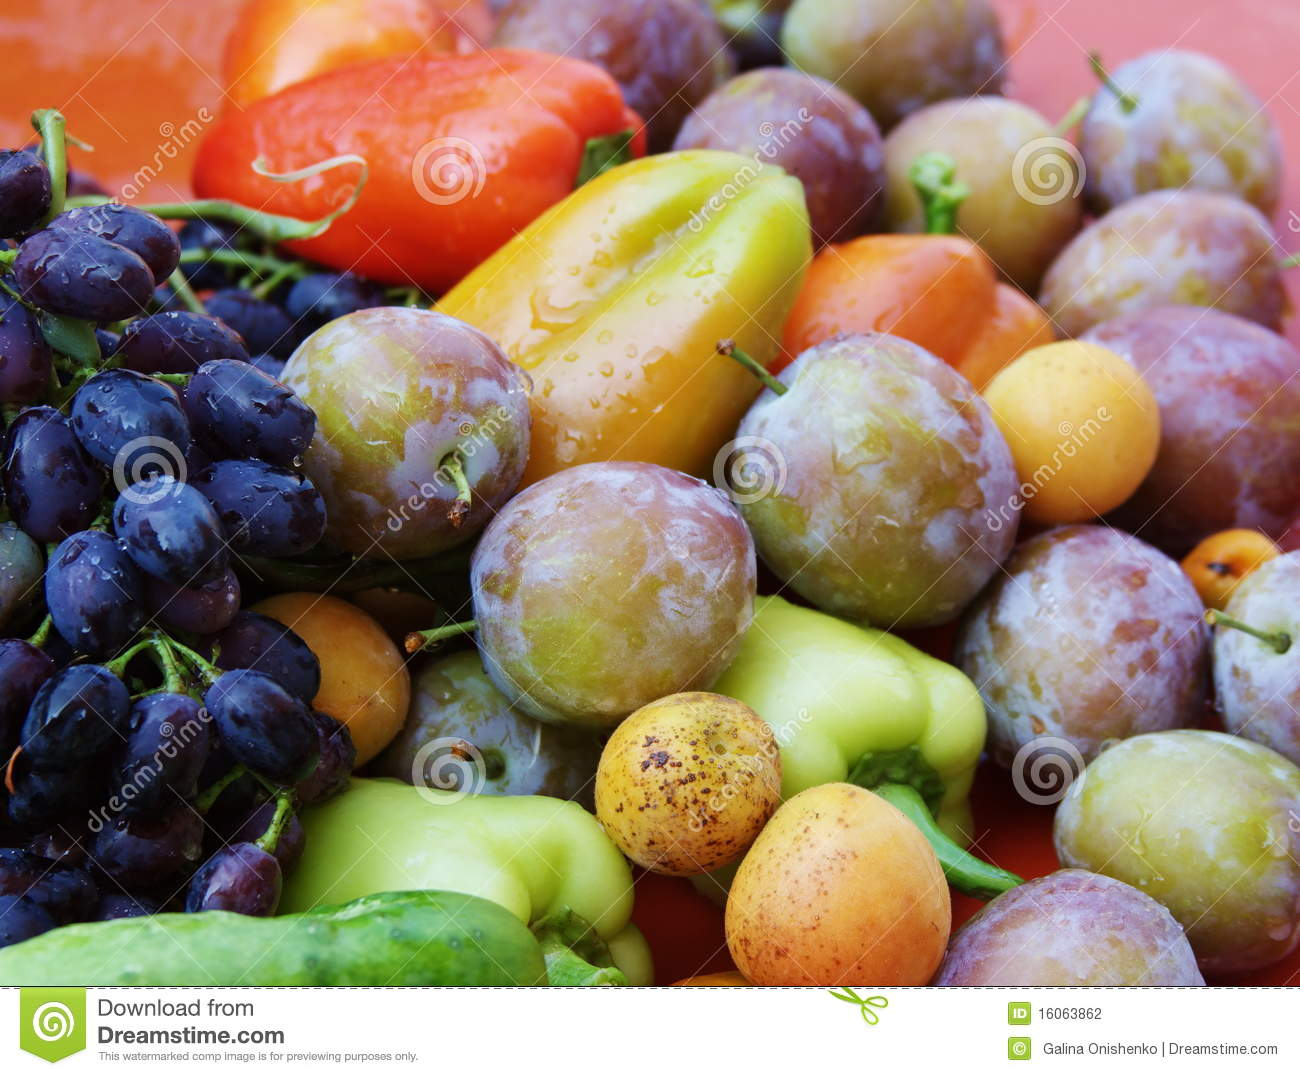 Beautiful fruit pictures - Beautiful Fruit And Vegetables